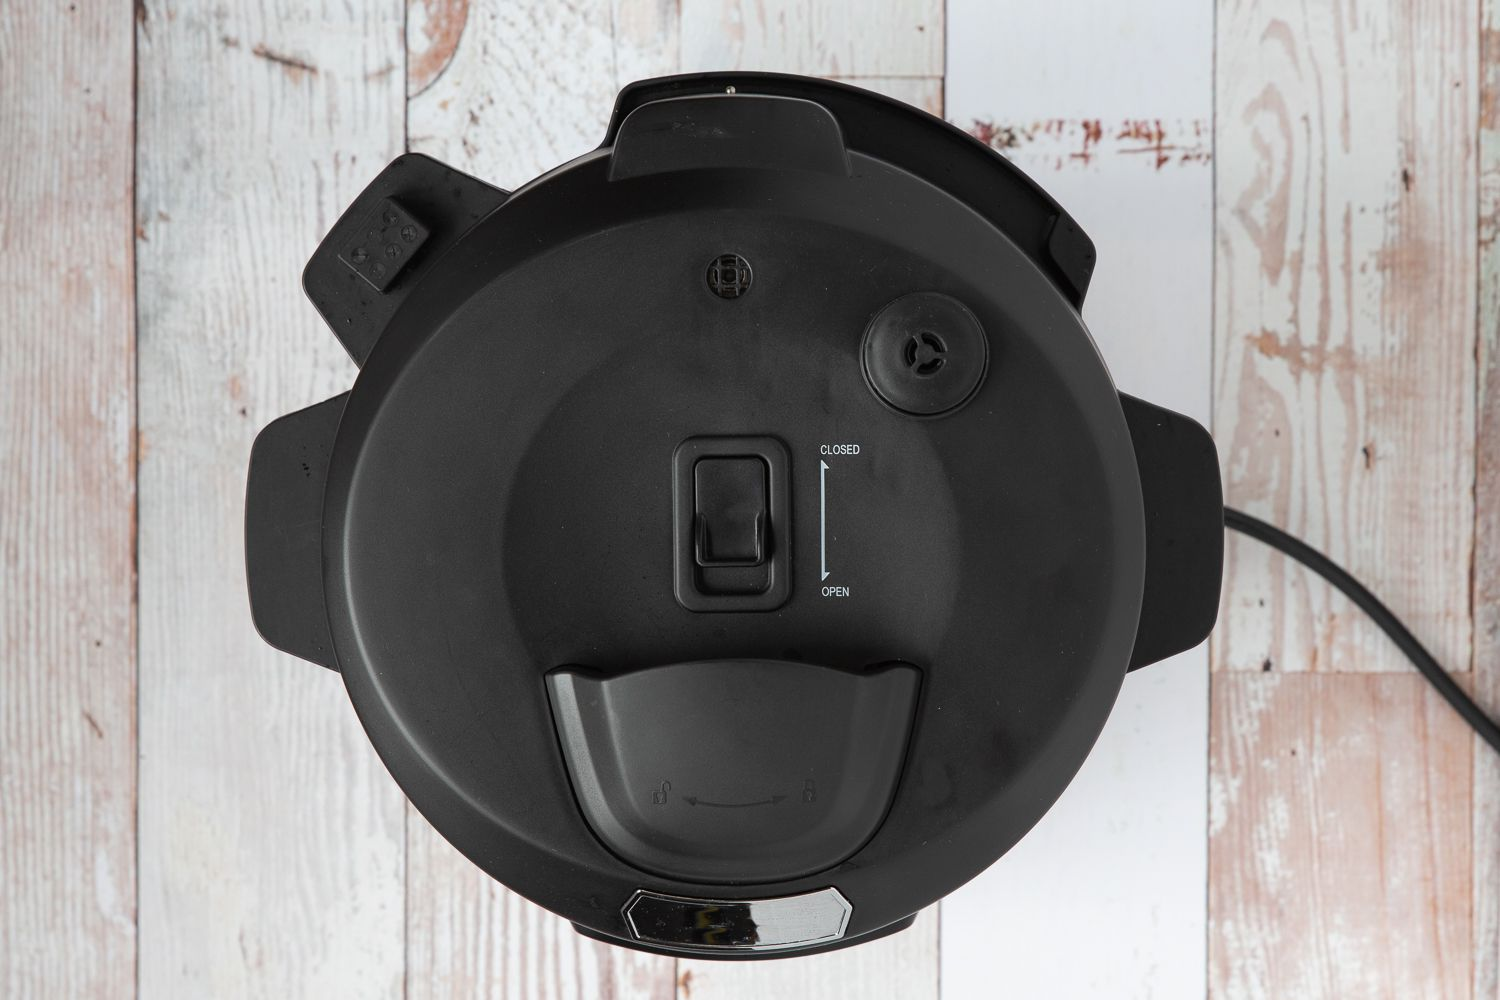 Lock the Instant Pot lid in place